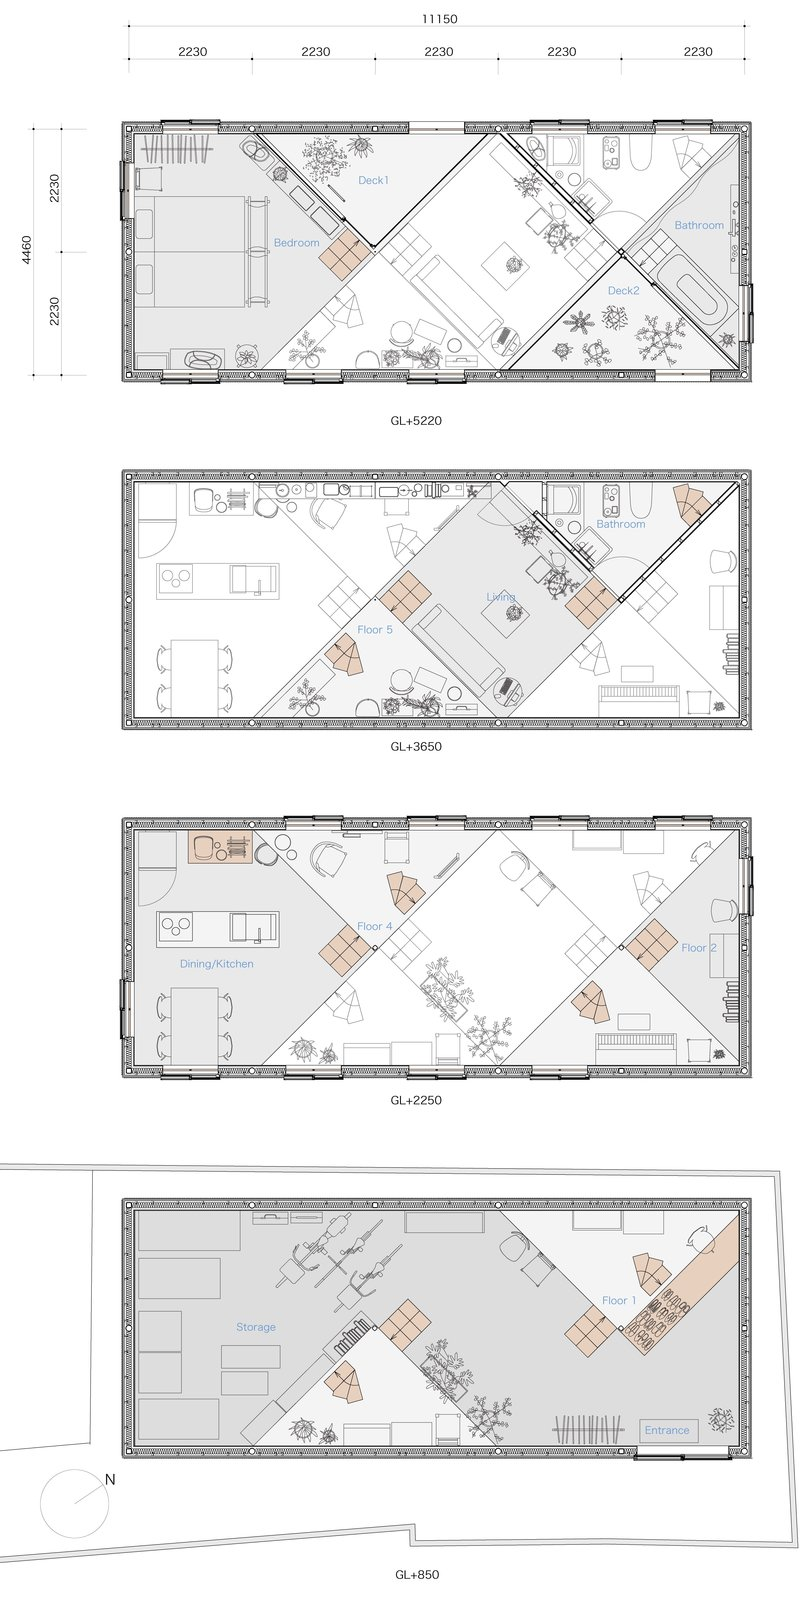 Floor plan drawings.  Photo 14 of 14 in 13 Spiraling Platforms Increase Space and Connection in This One-Room Home